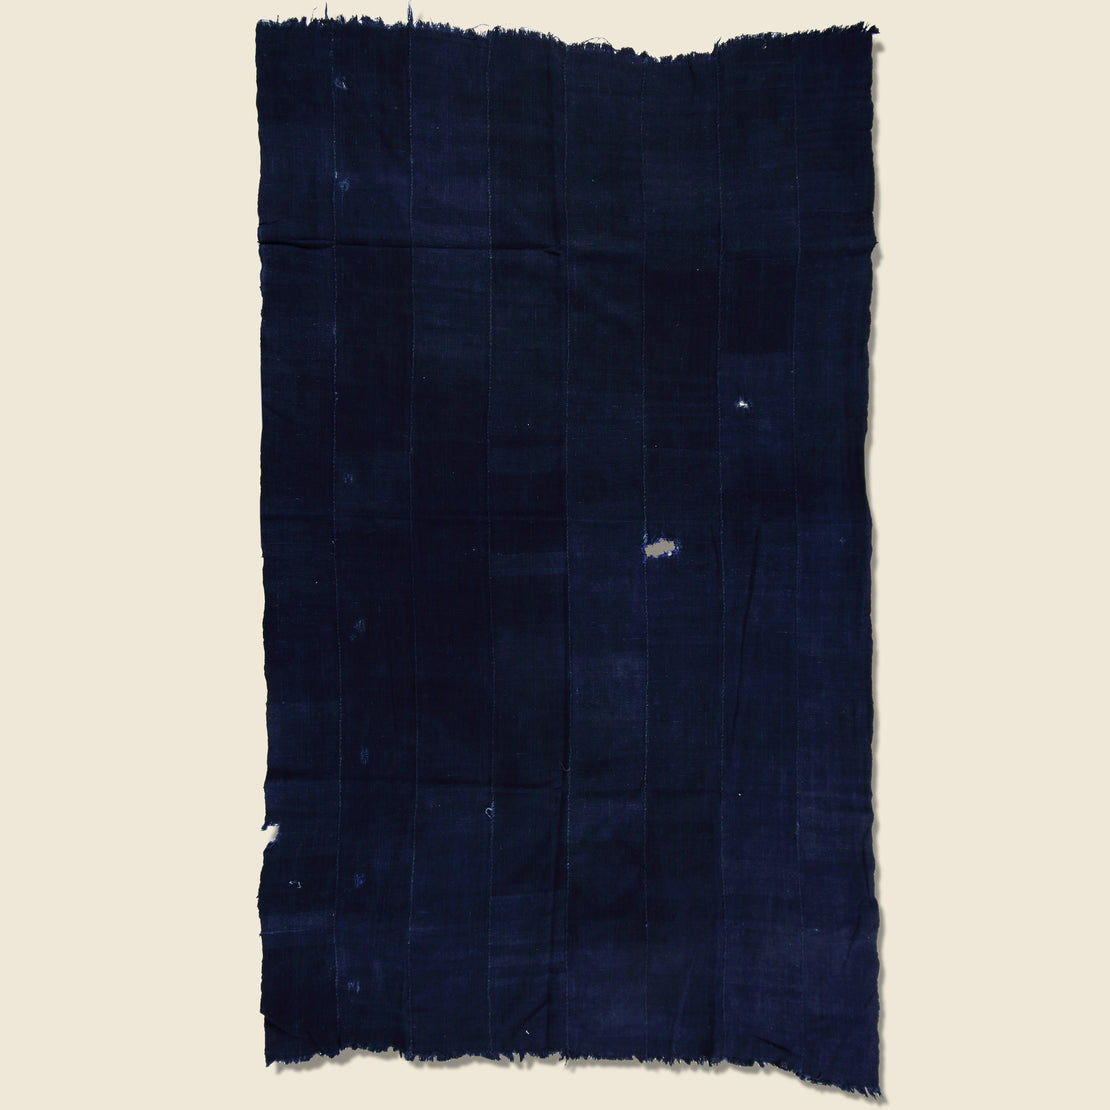 Hand Woven African Indigo Textile - Vintage - STAG Provisions - One & Done - Blanket